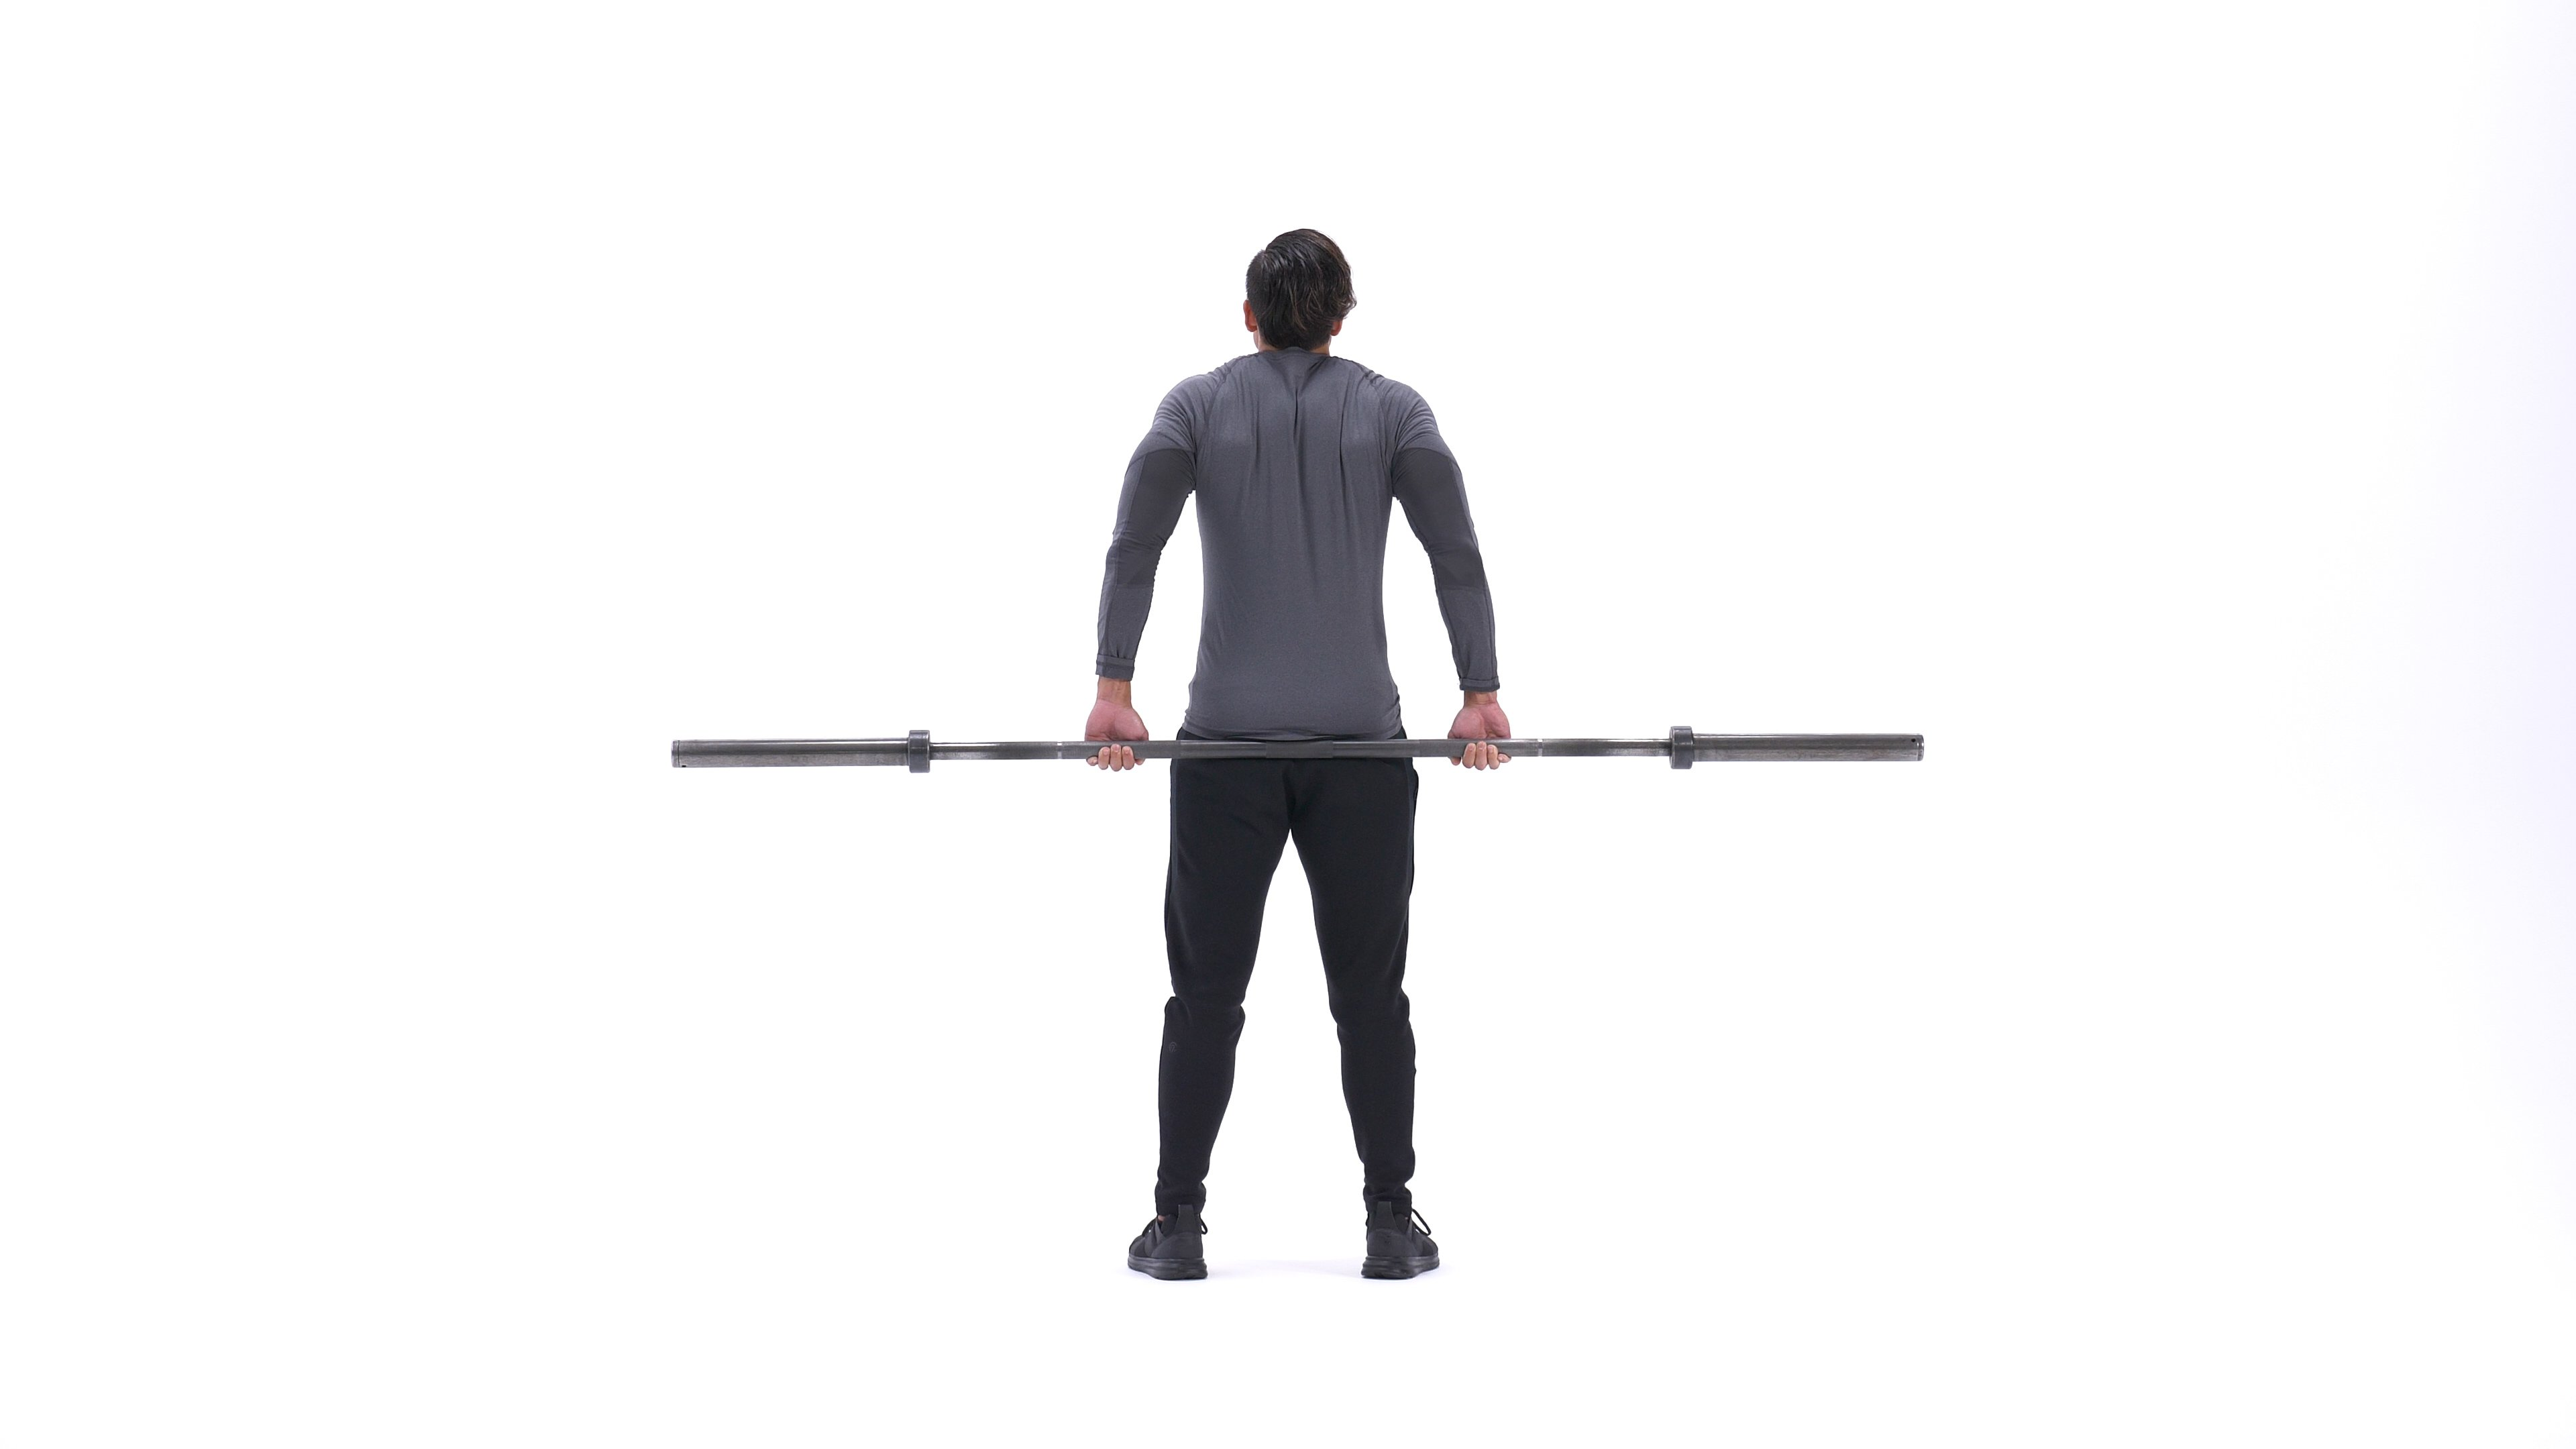 Barbell behind-the-back shrug image